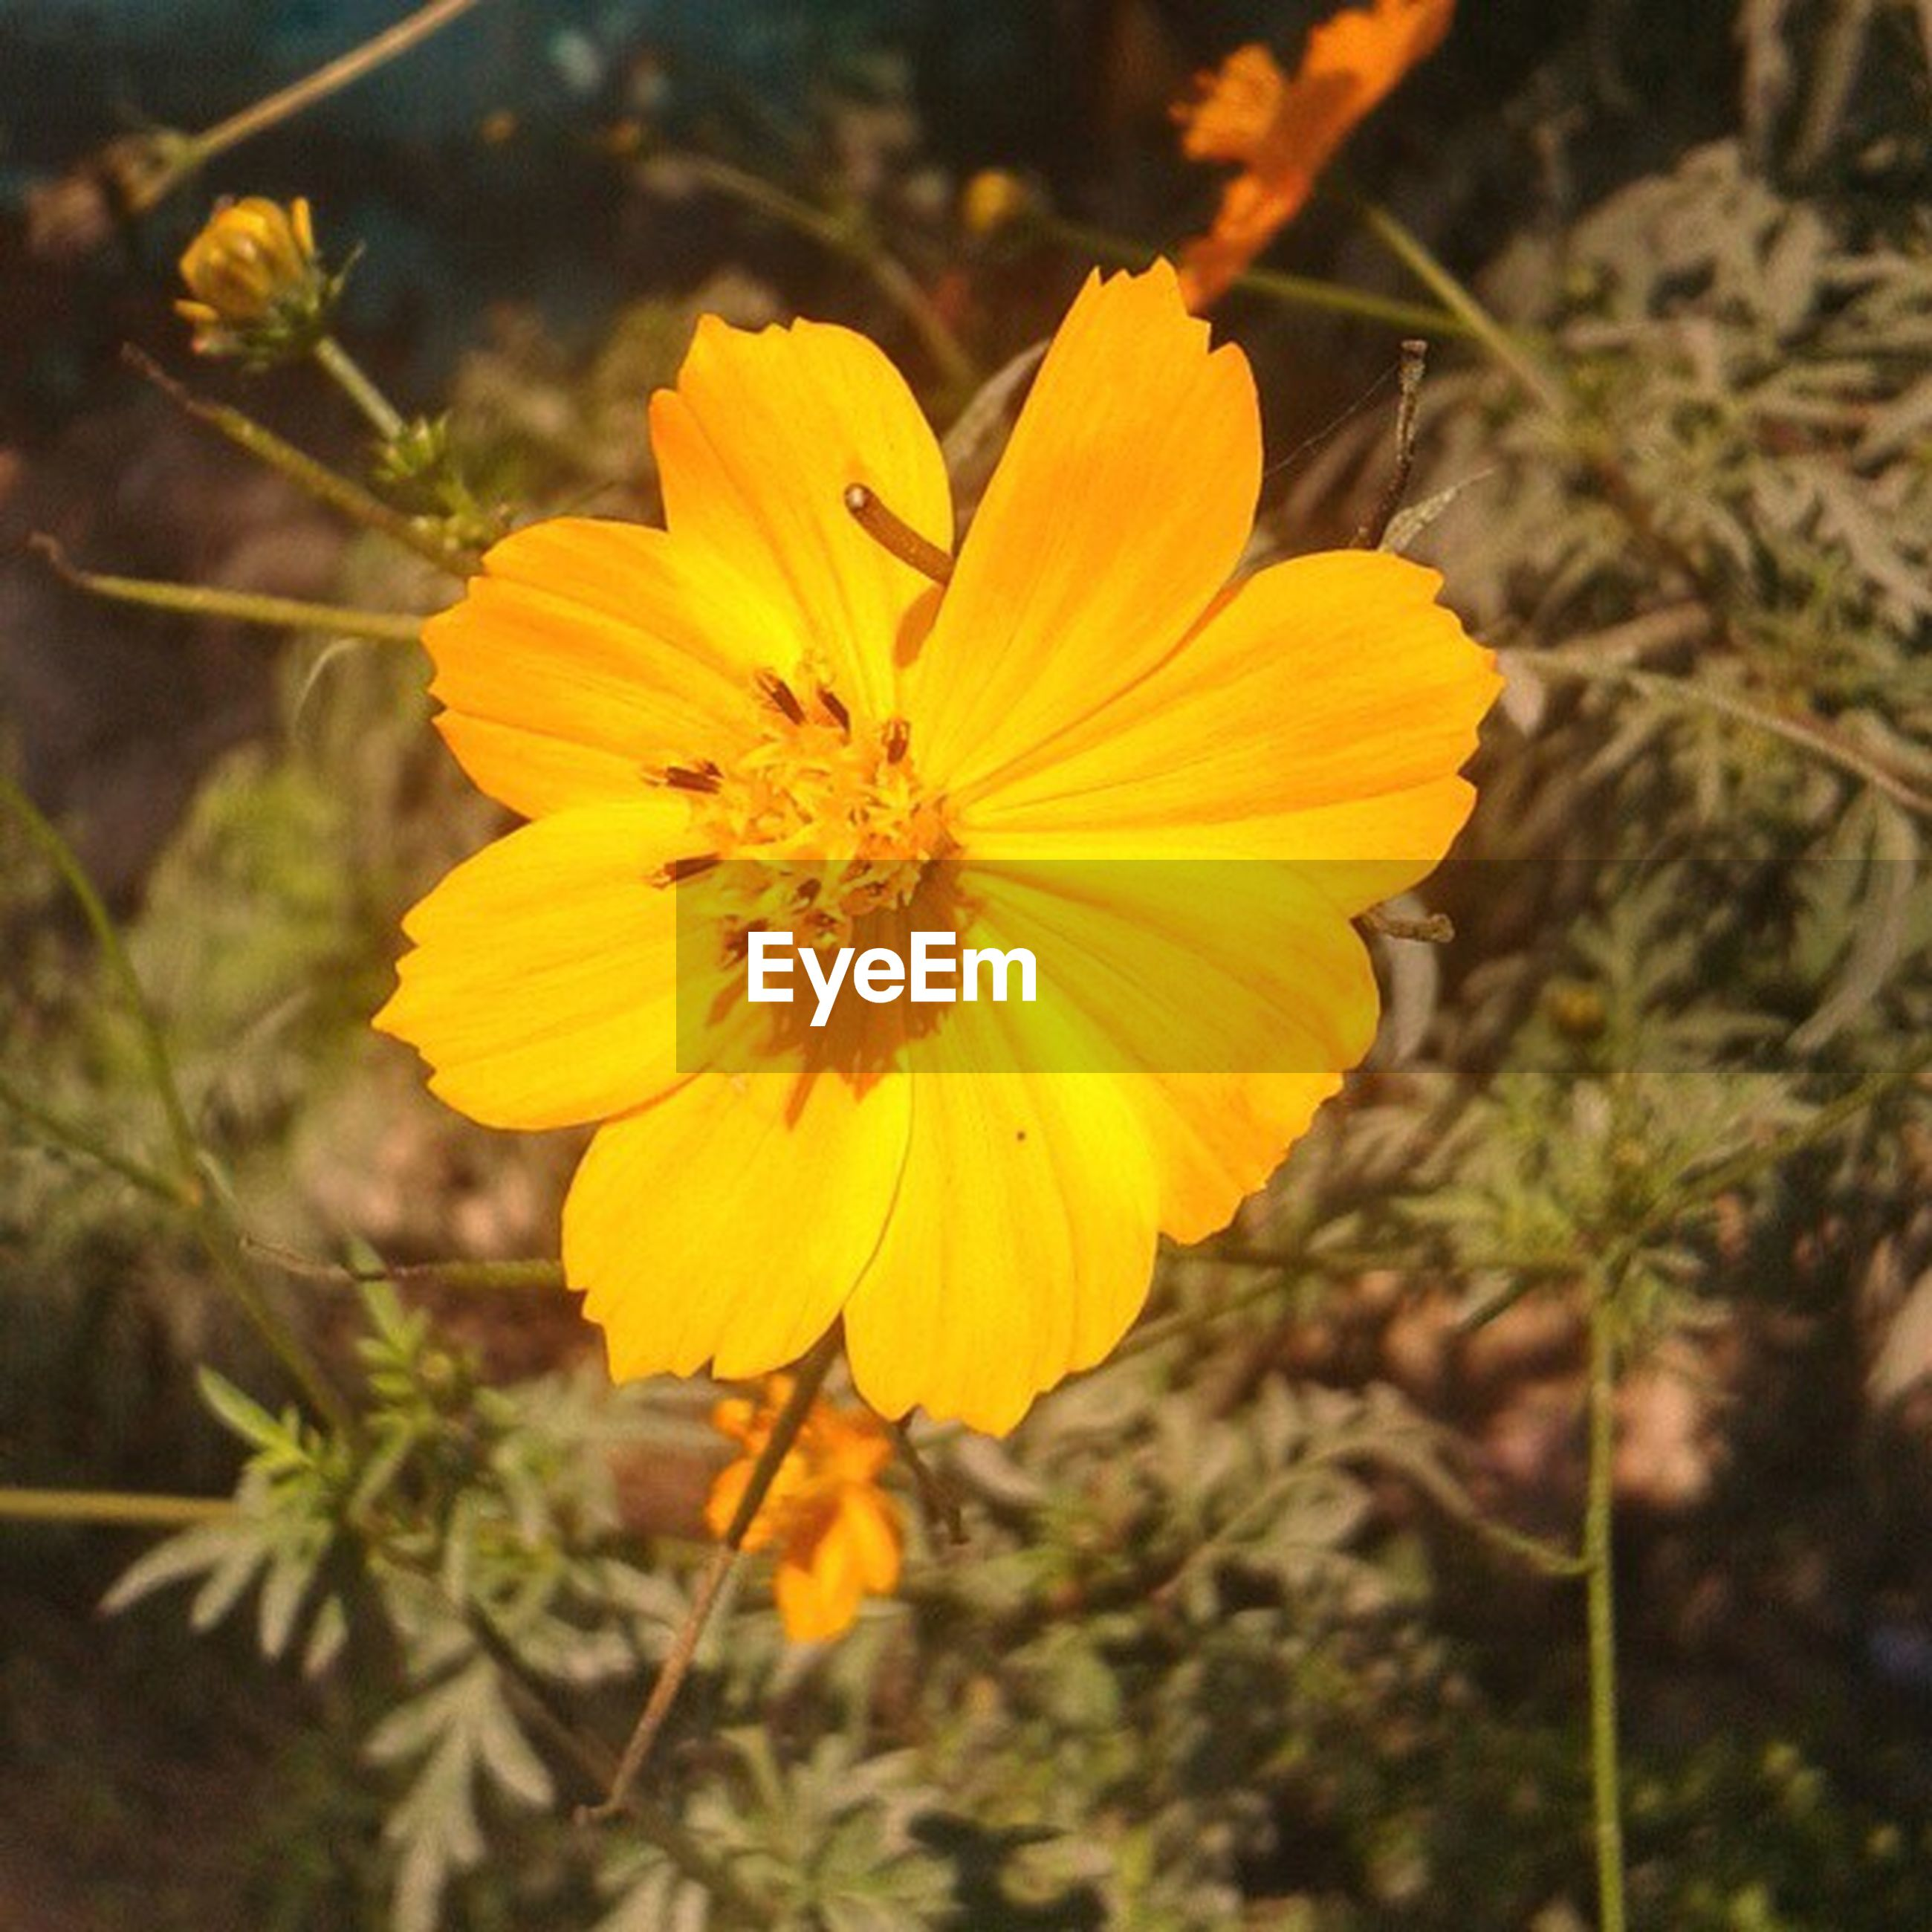 flower, petal, yellow, freshness, fragility, flower head, growth, close-up, focus on foreground, beauty in nature, nature, blooming, plant, single flower, pollen, in bloom, stamen, blossom, no people, outdoors